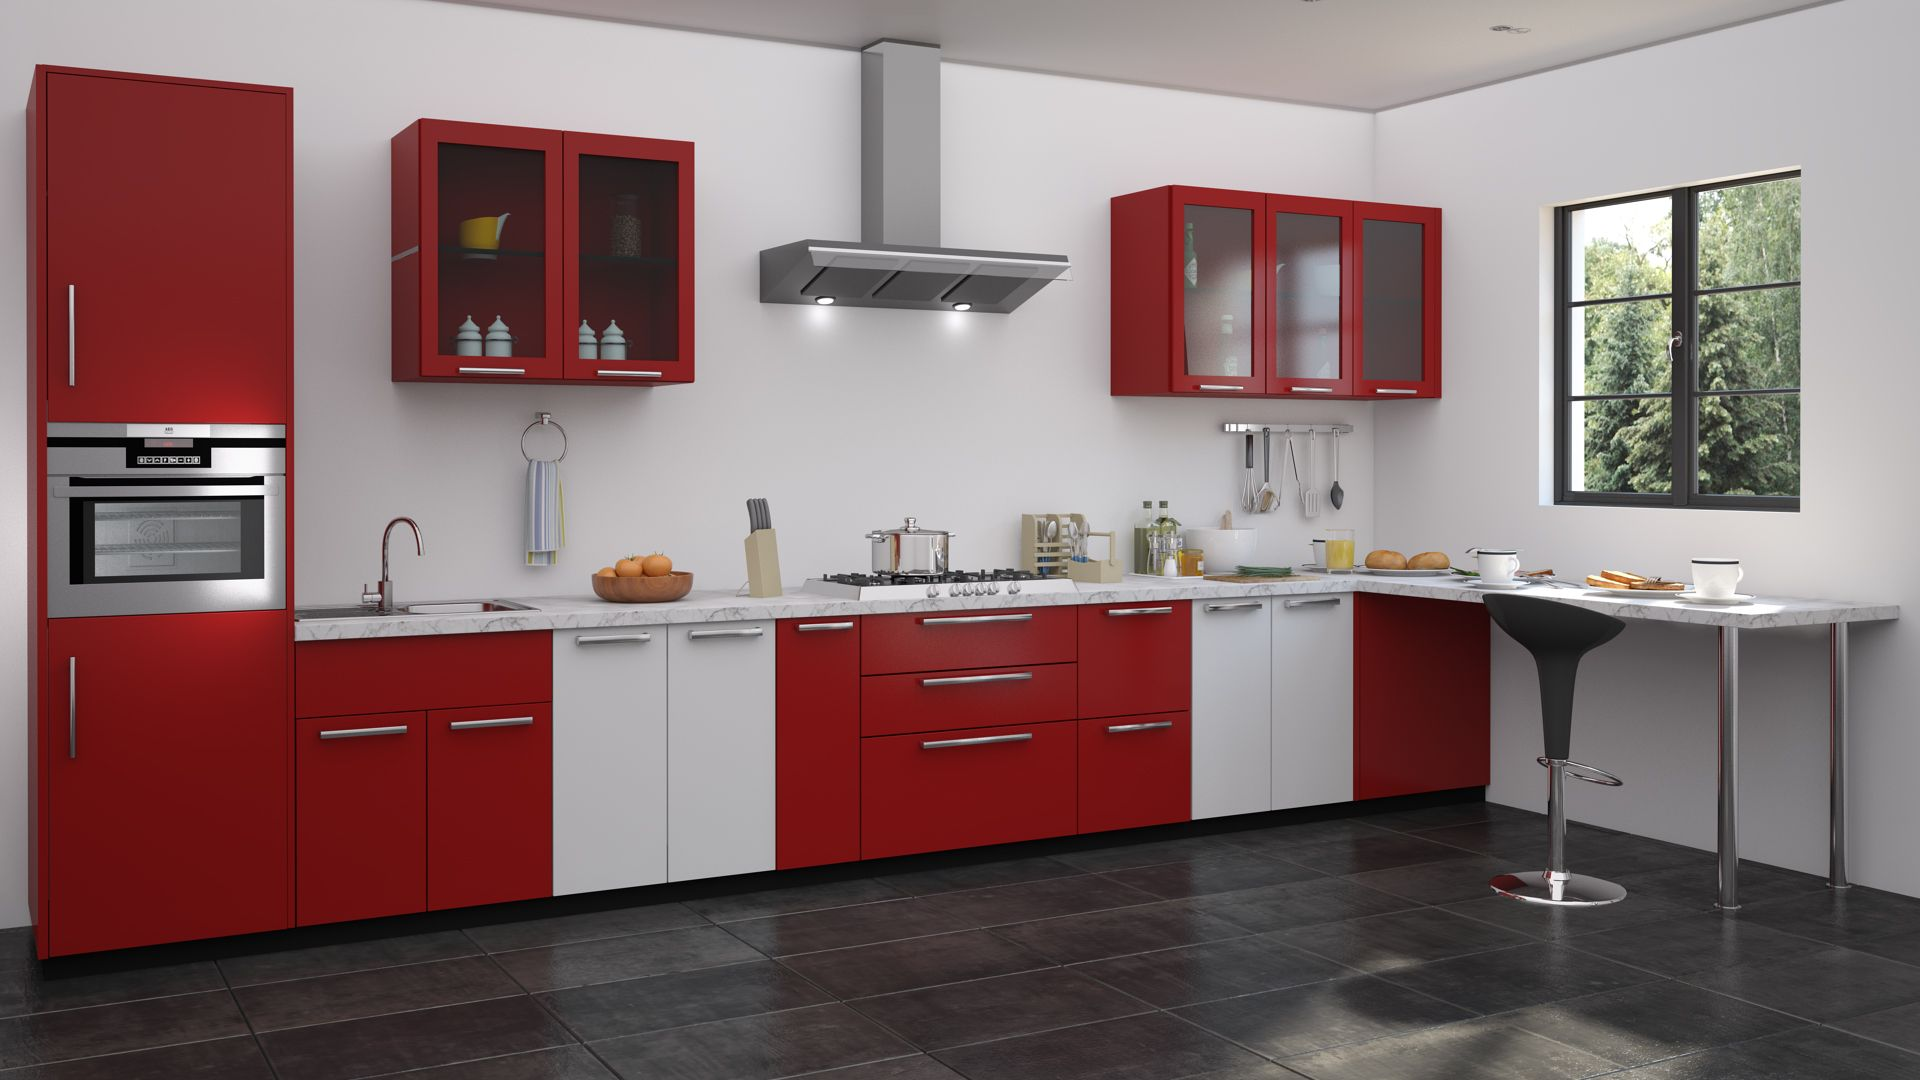 red and white kitchen designs straight kitchen designs pinterest kitchen design kitchens. Black Bedroom Furniture Sets. Home Design Ideas